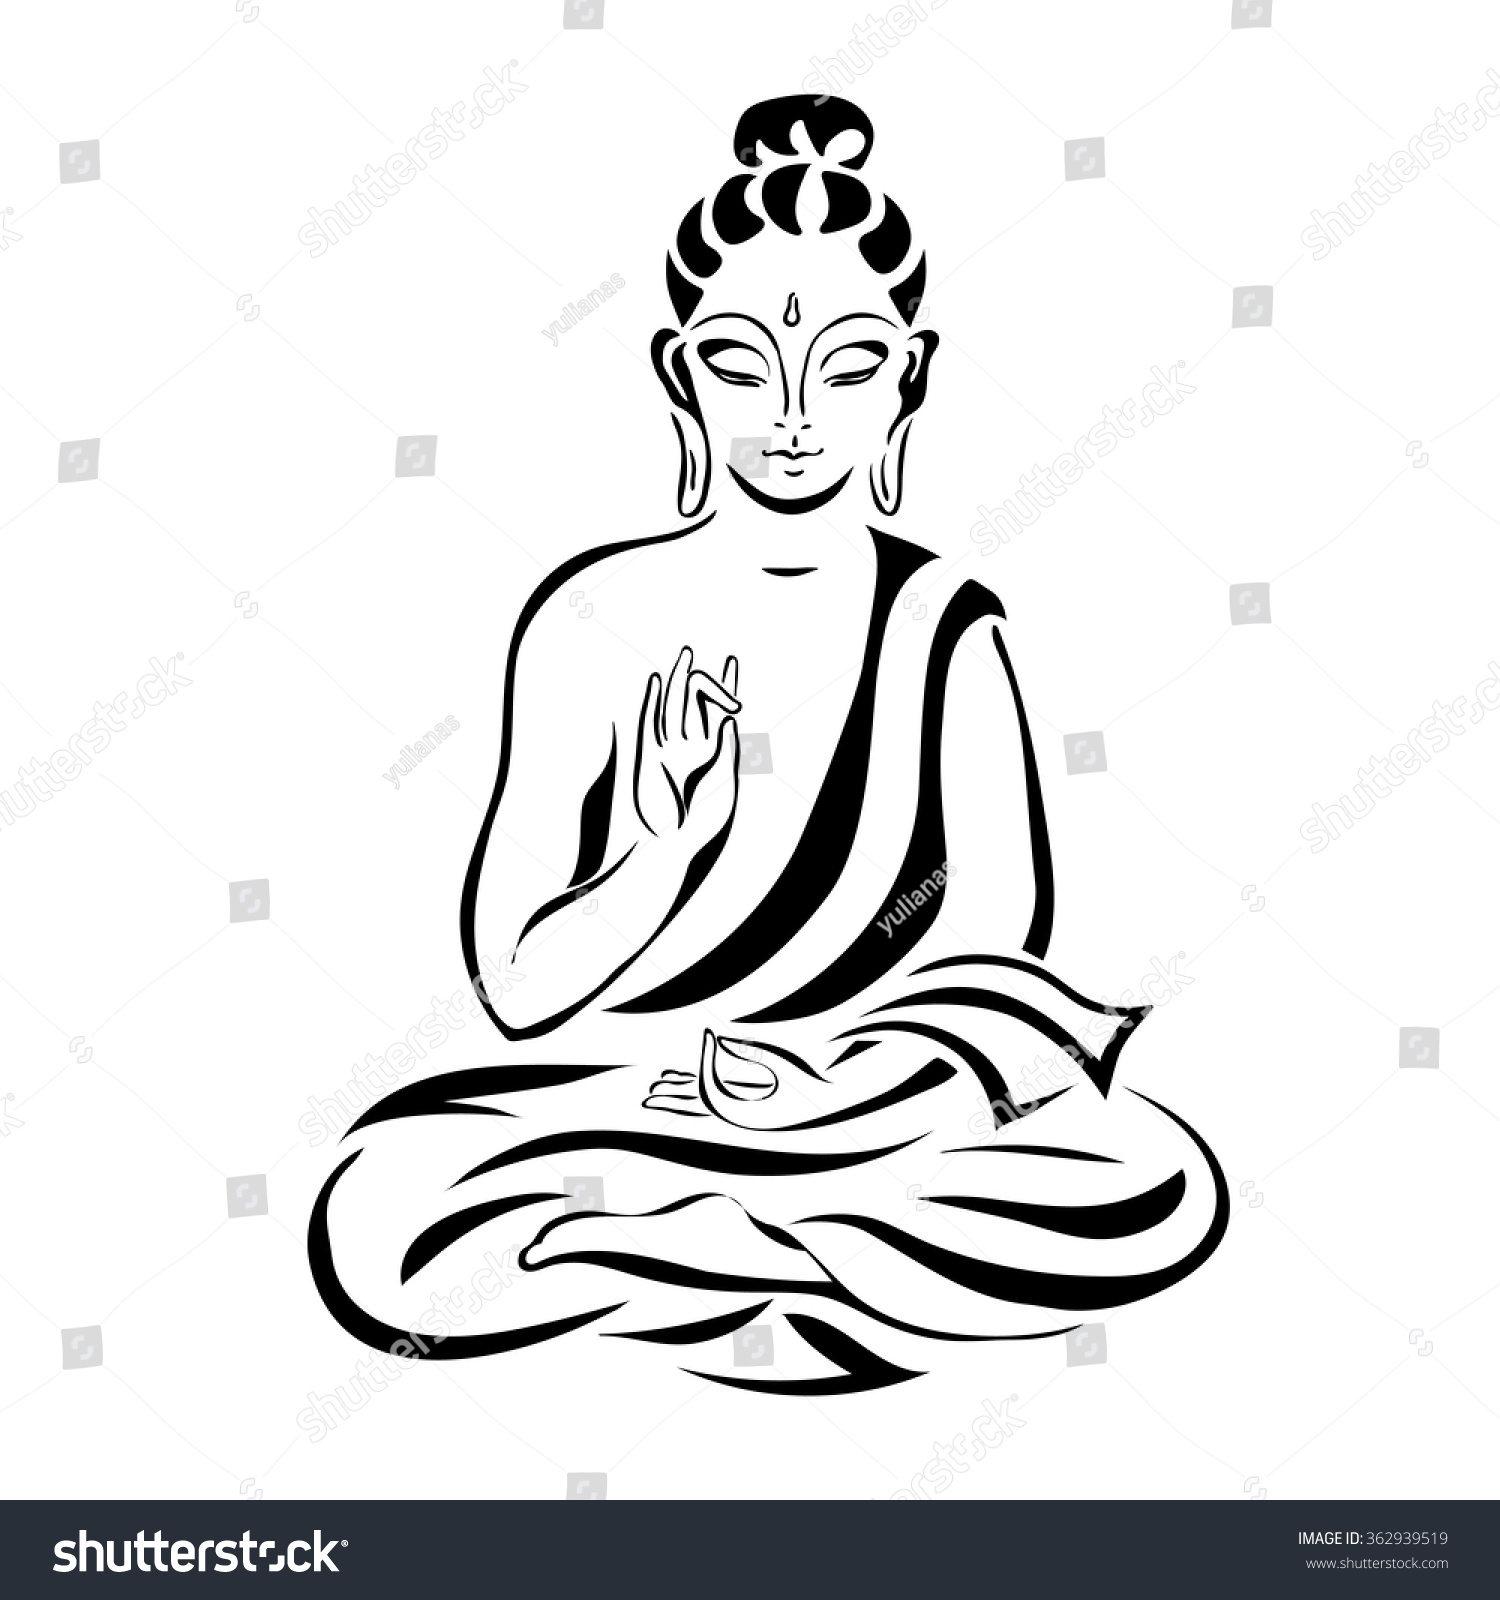 Simple Buddha Line Art buddha in the lotus position. black outlines ...